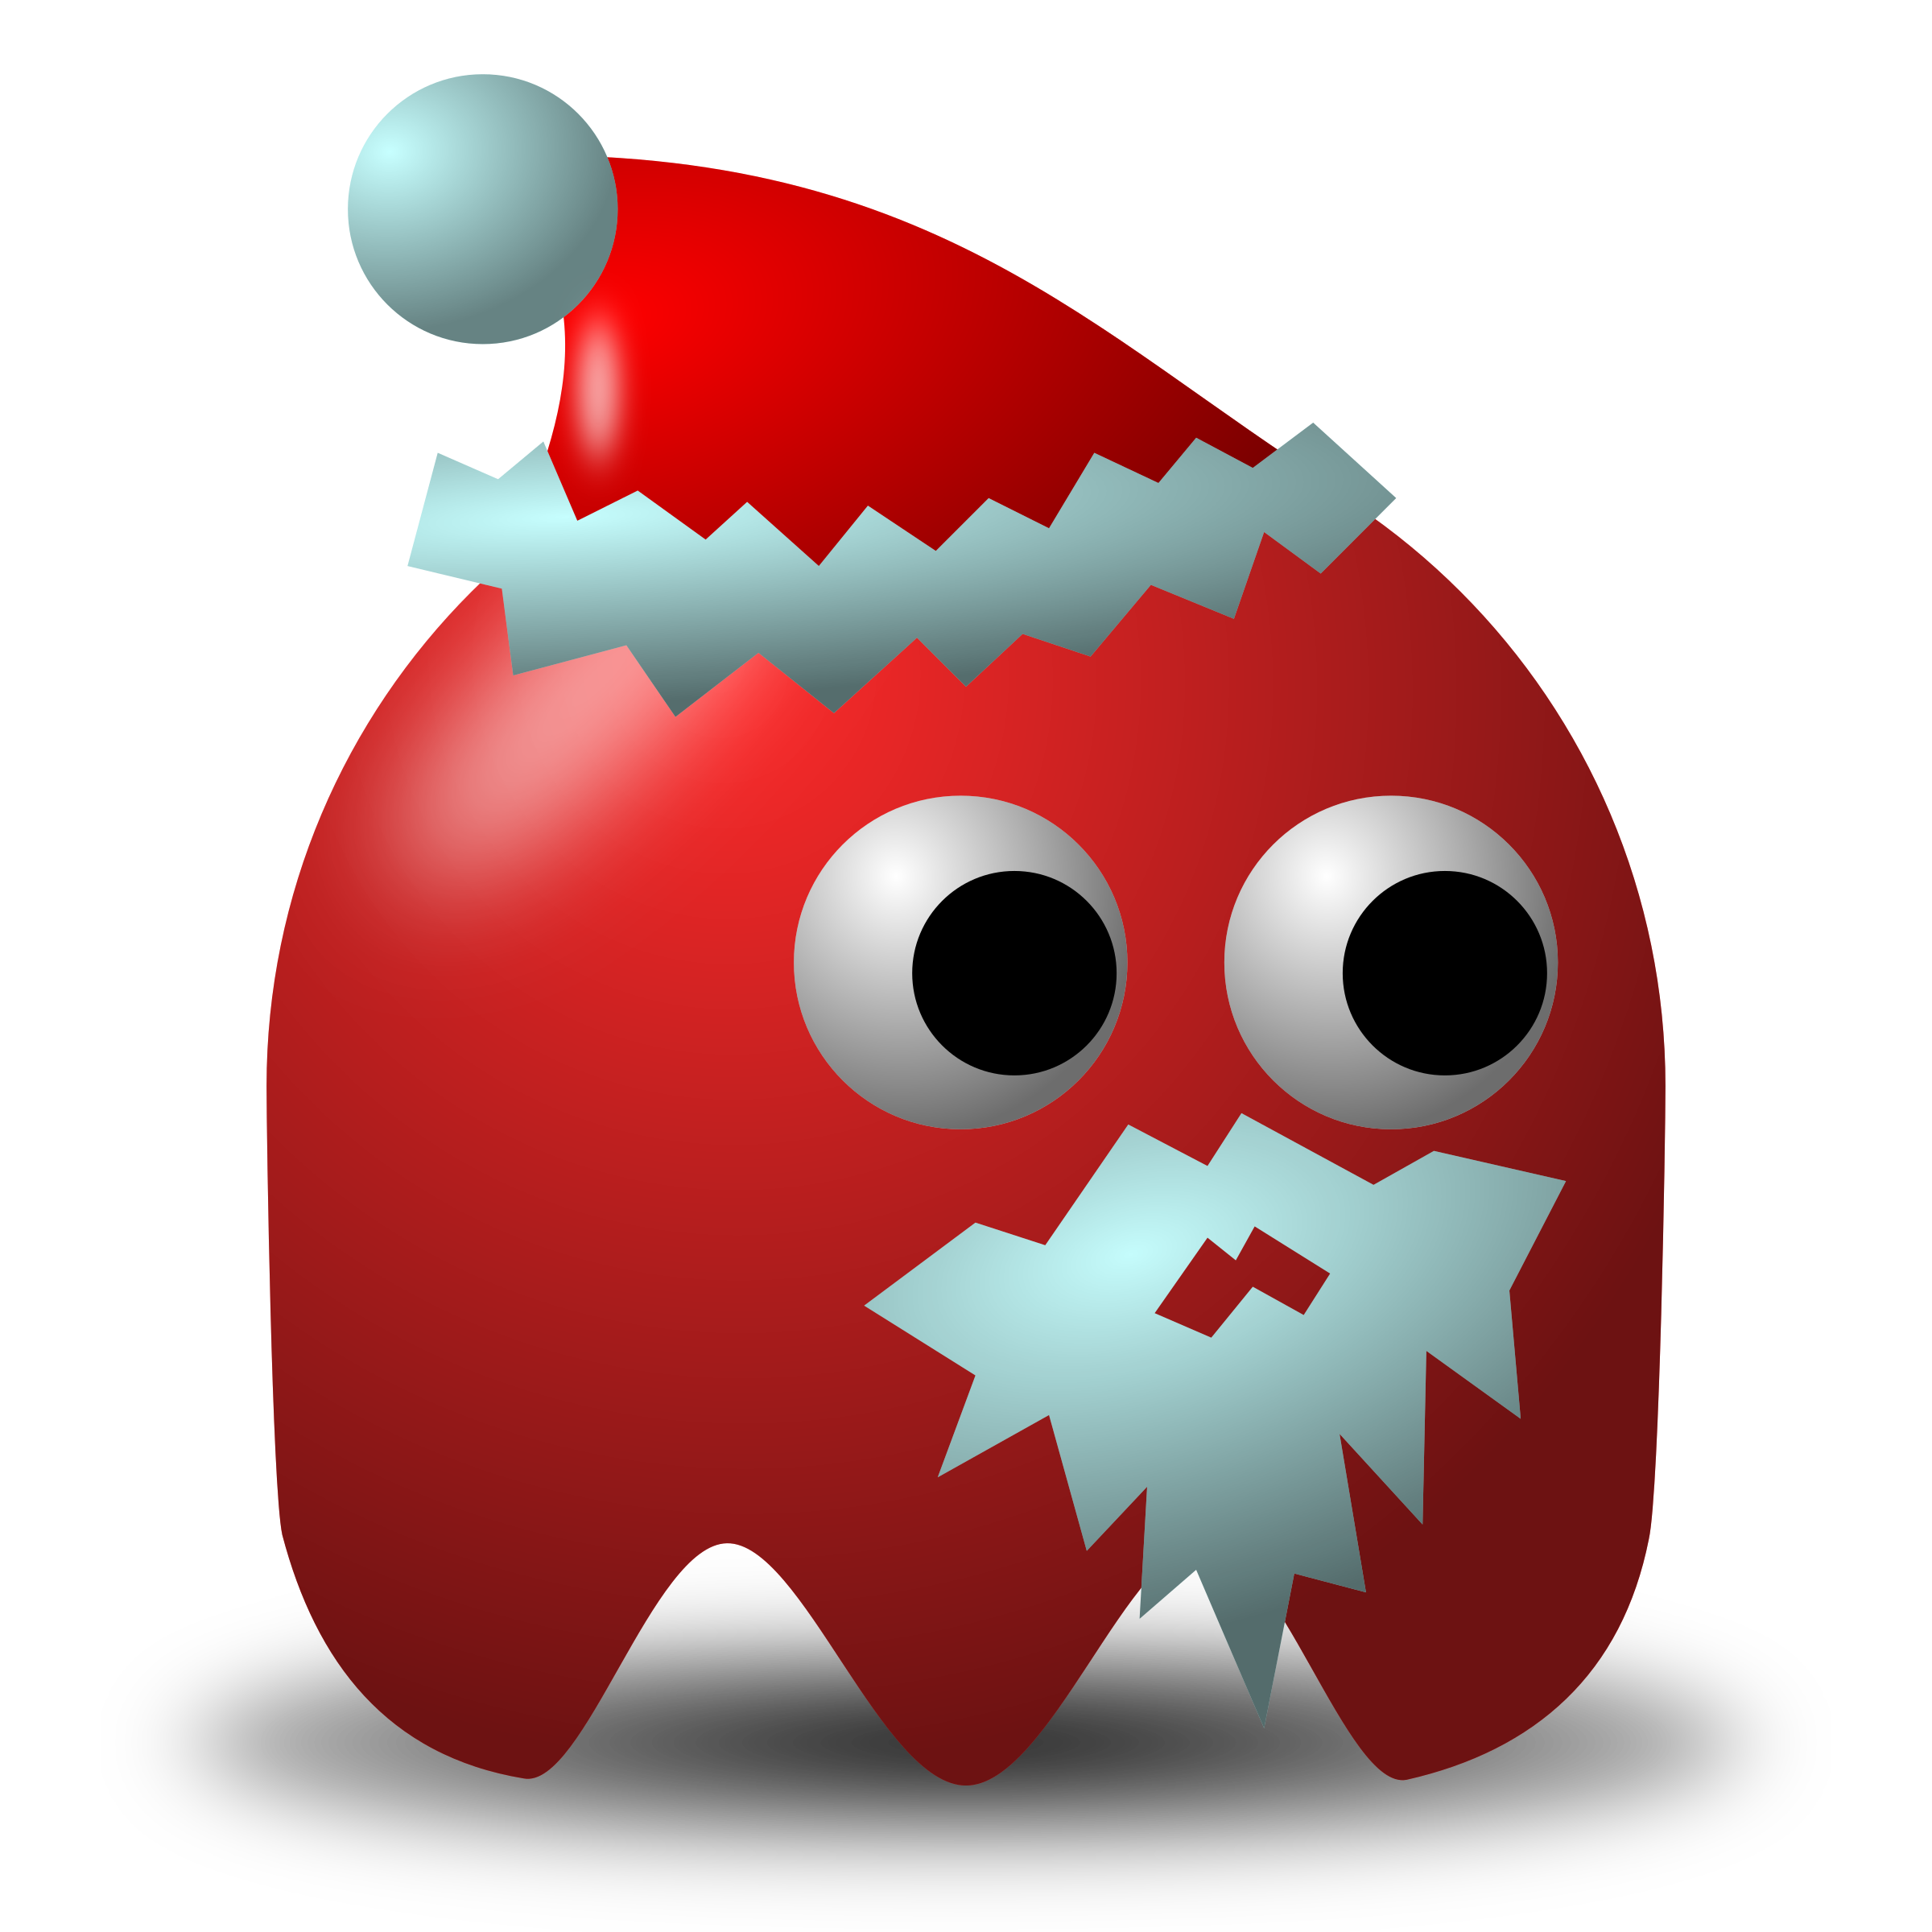 banner transparent stock Arcade clipart gaming. Game baddie santa big.